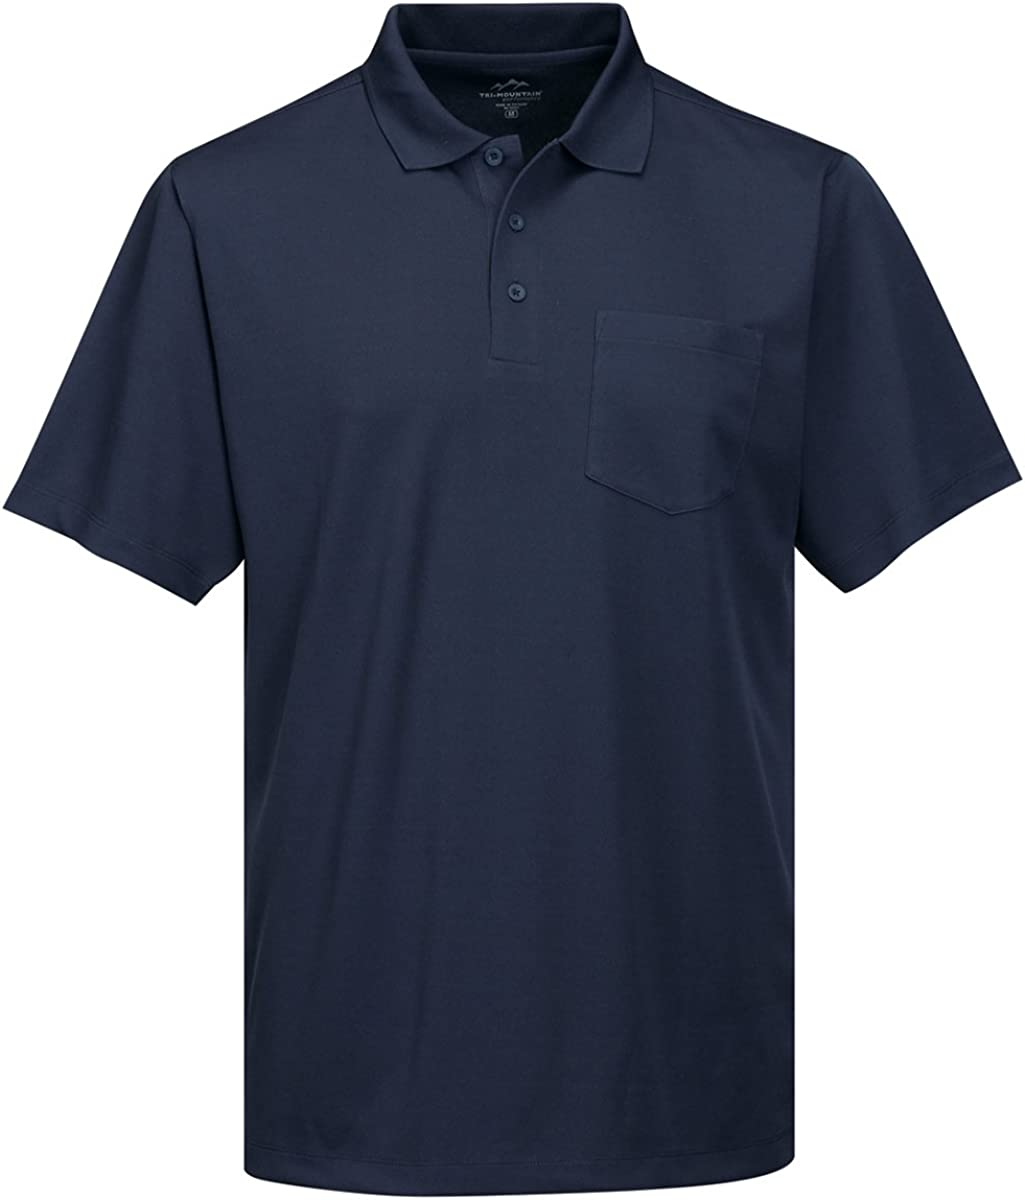 Tri-Mountain Online limited product Omaha Mall Men's 5 oz Moisture Wicking Polyester Shirt w Pocke